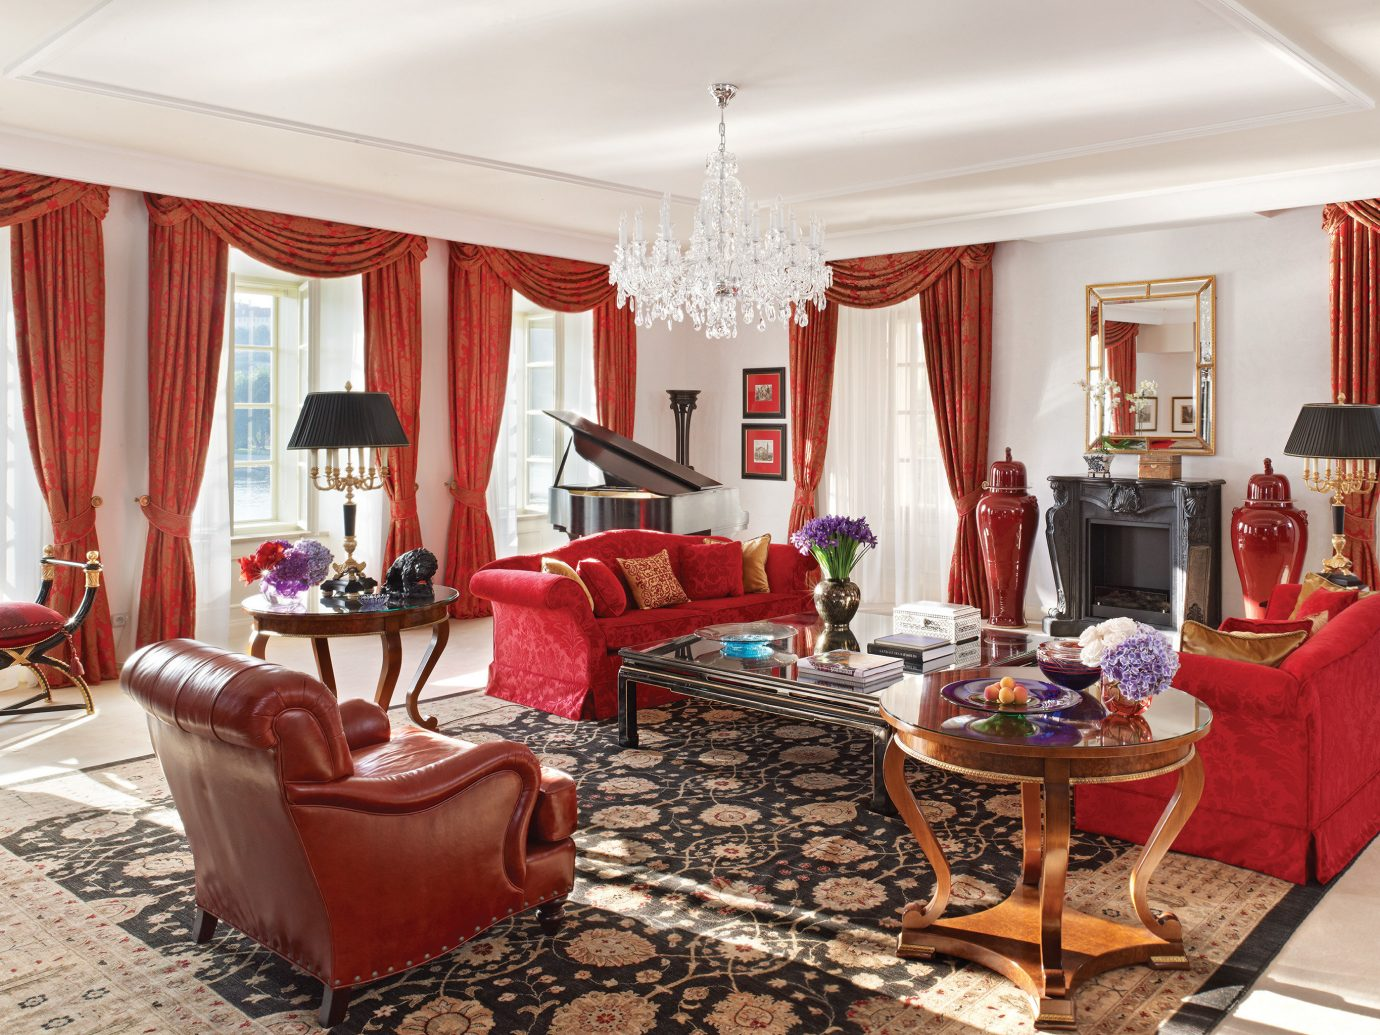 europe Hip Hotels Living Lounge Luxury Modern Prague Romantic indoor room floor wall window sofa furniture ceiling chair property living room dining room red estate home interior design real estate decorated Suite cottage rug mansion flat area Bedroom leather several